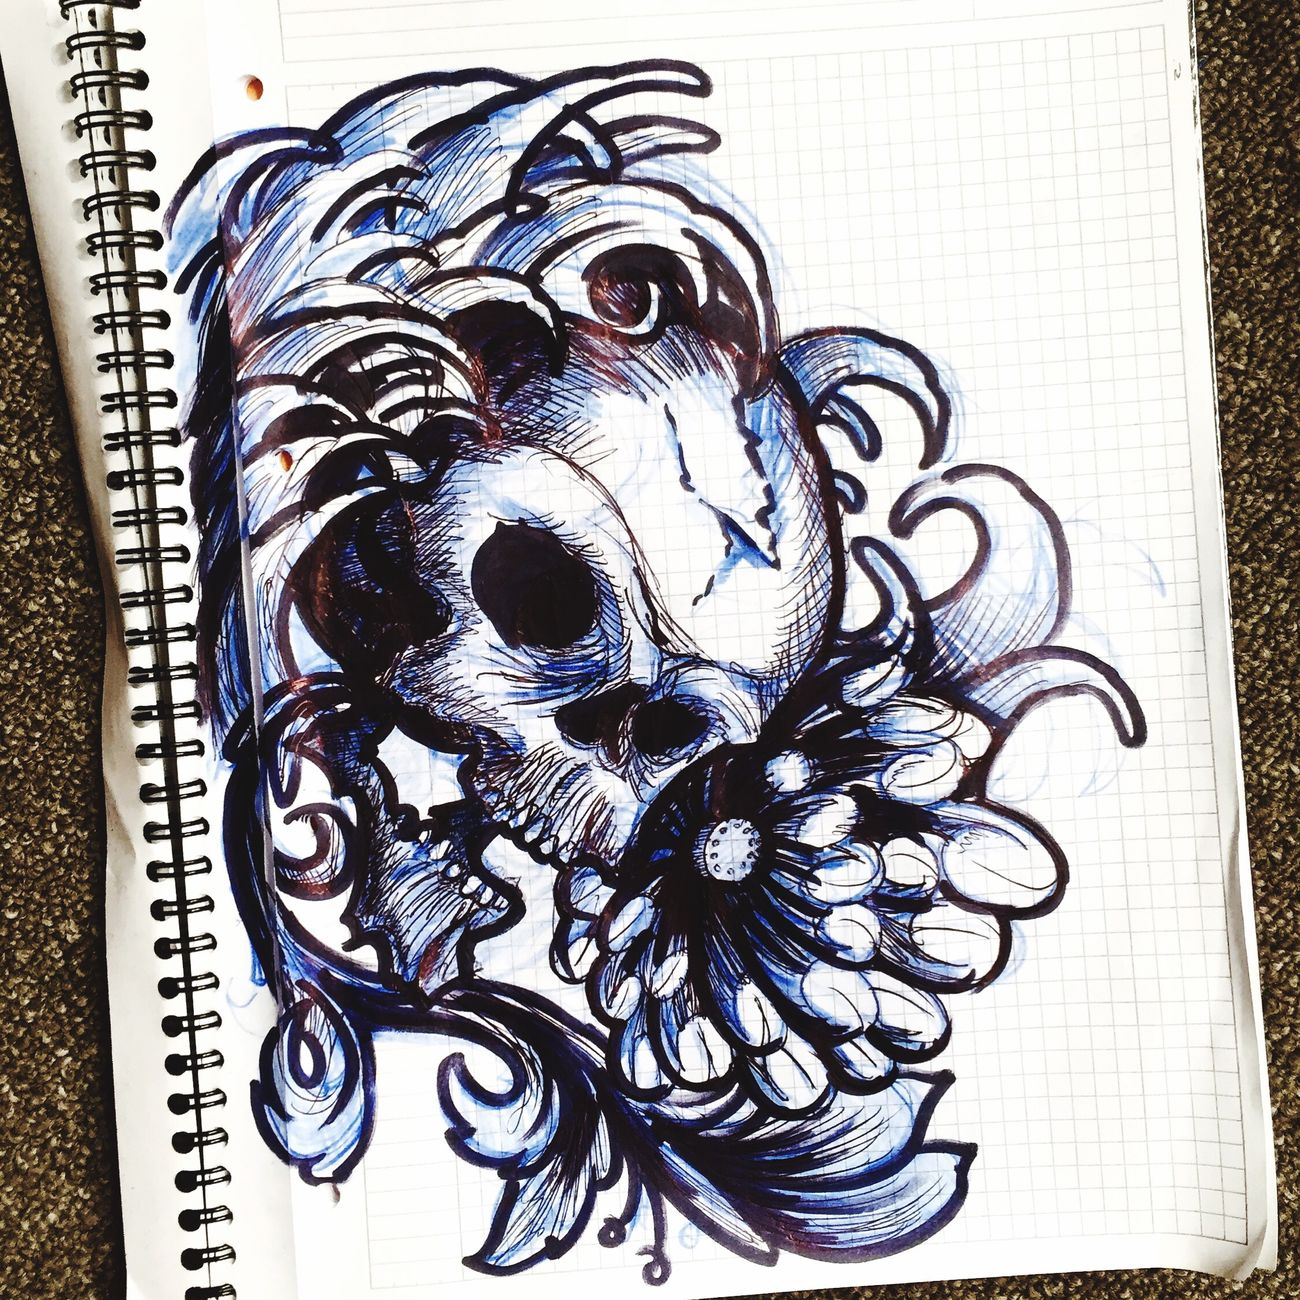 Tattooshop Traditionaltattooflash Traditionaltattoo Tattooflash Art, Drawing, Creativity Traditional Flash Drawing Tieumdekotattoo Tattooartist  Tattoo ❤ Tattoos Design Tattoo Tieumdeko Japanese  Skull Skulls Draw Oldschool